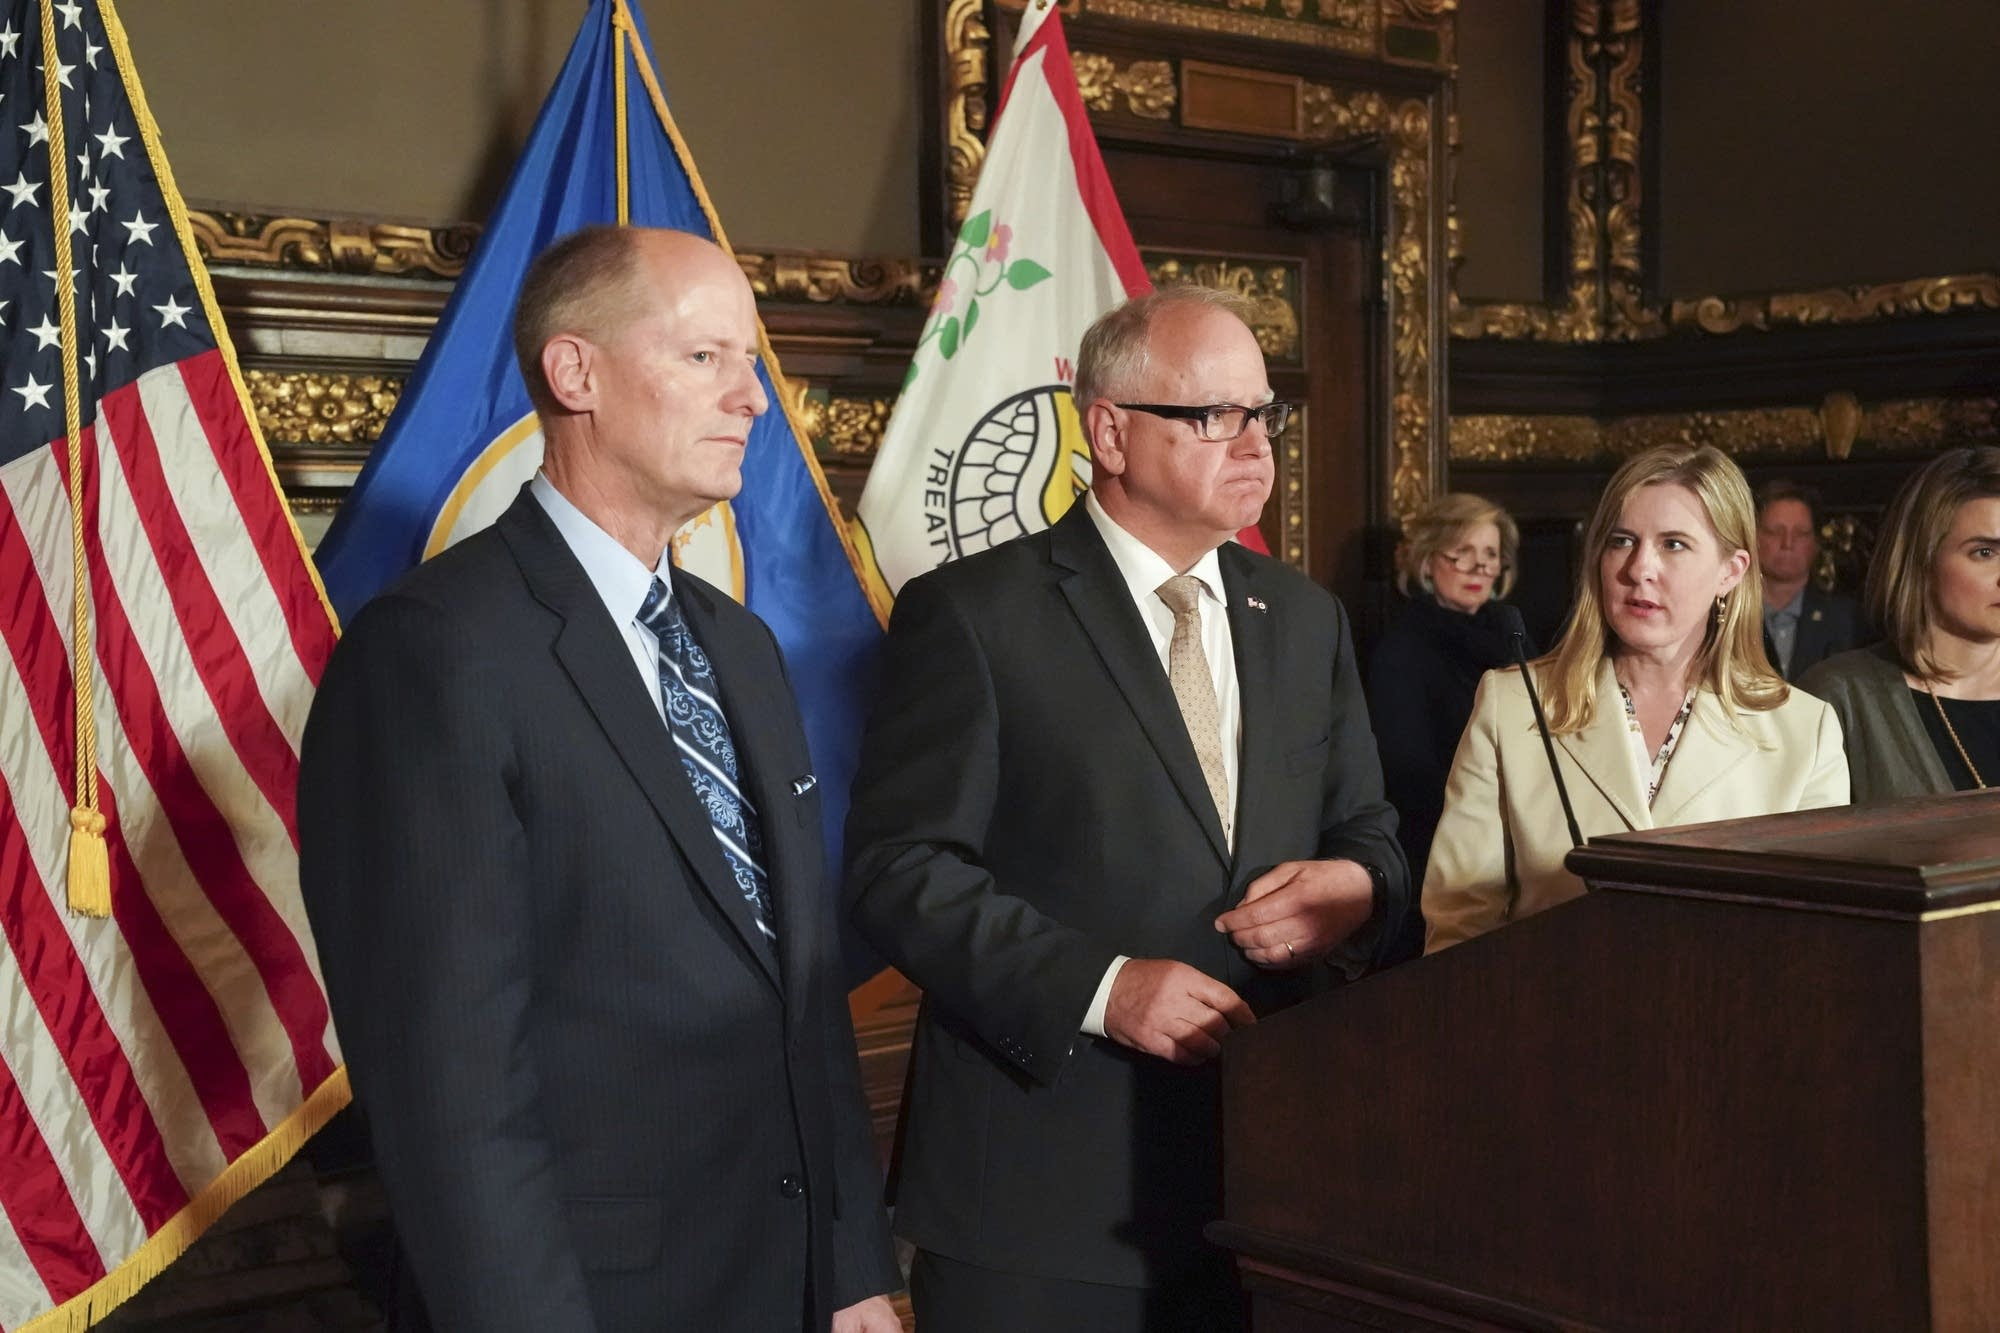 Gov. Tim Walz, Paul Gazelka and Melissa Hortman